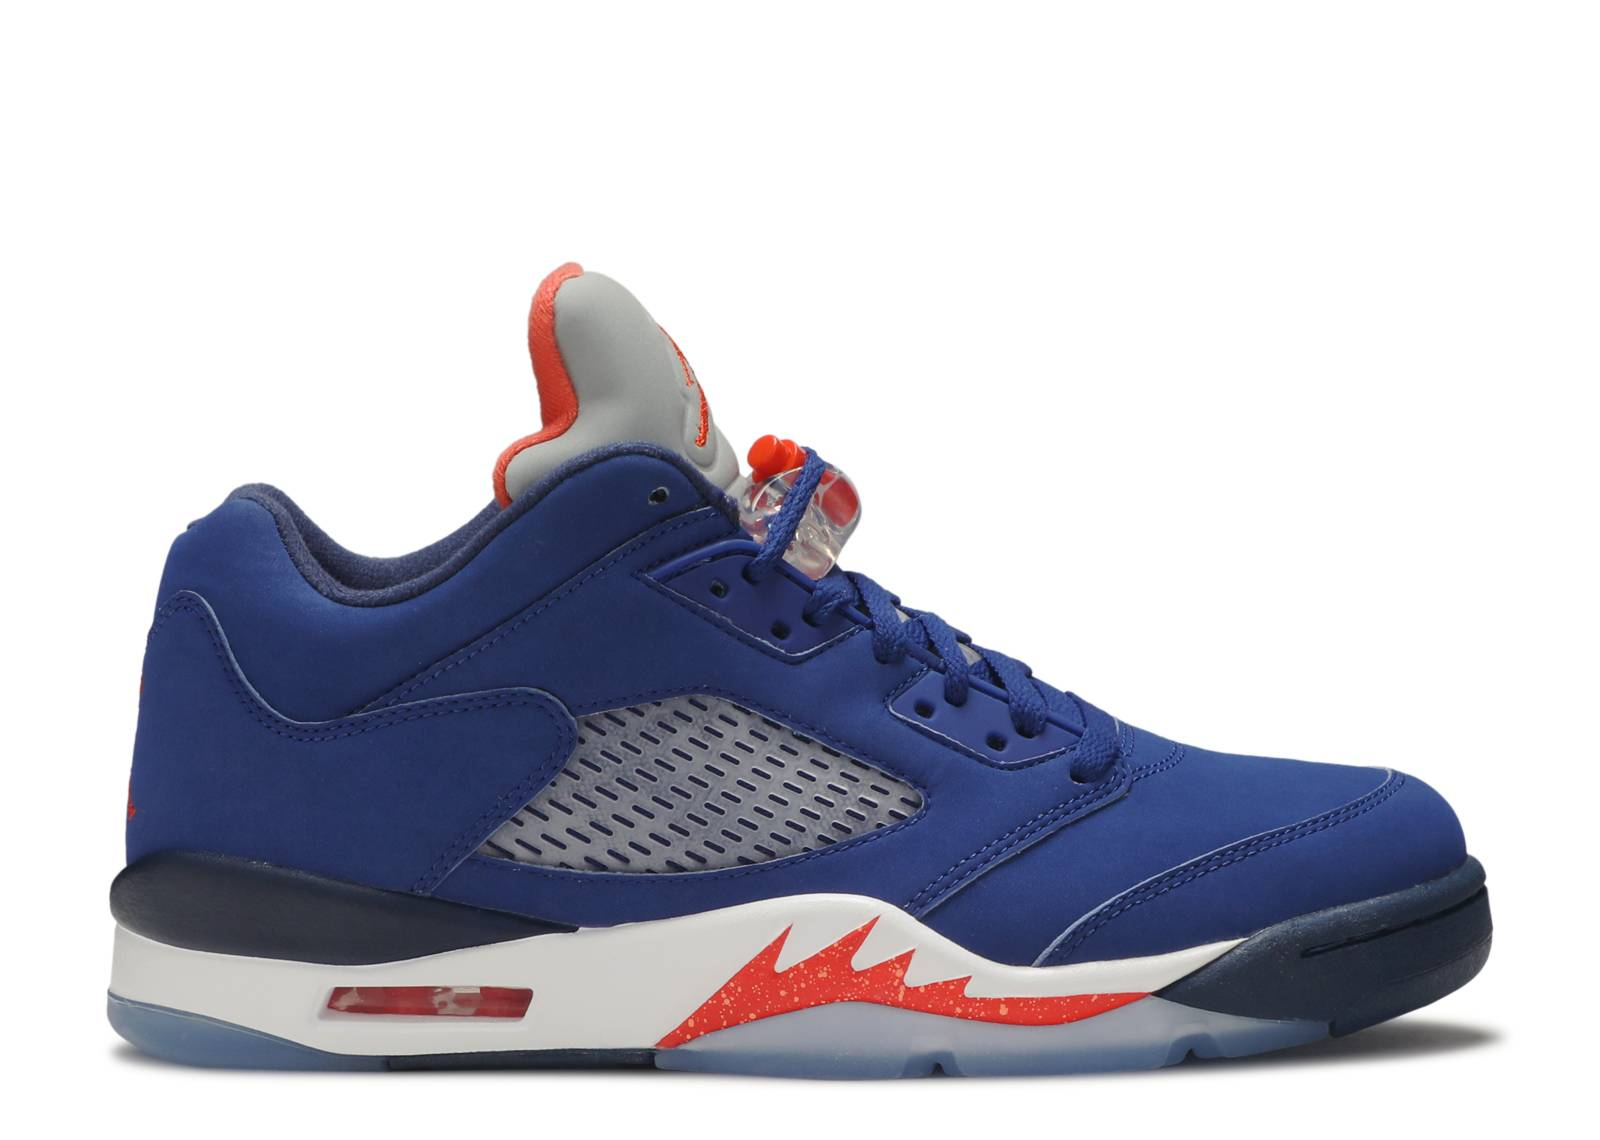 f8bc10292b027d Air Jordan 5 Retro Low